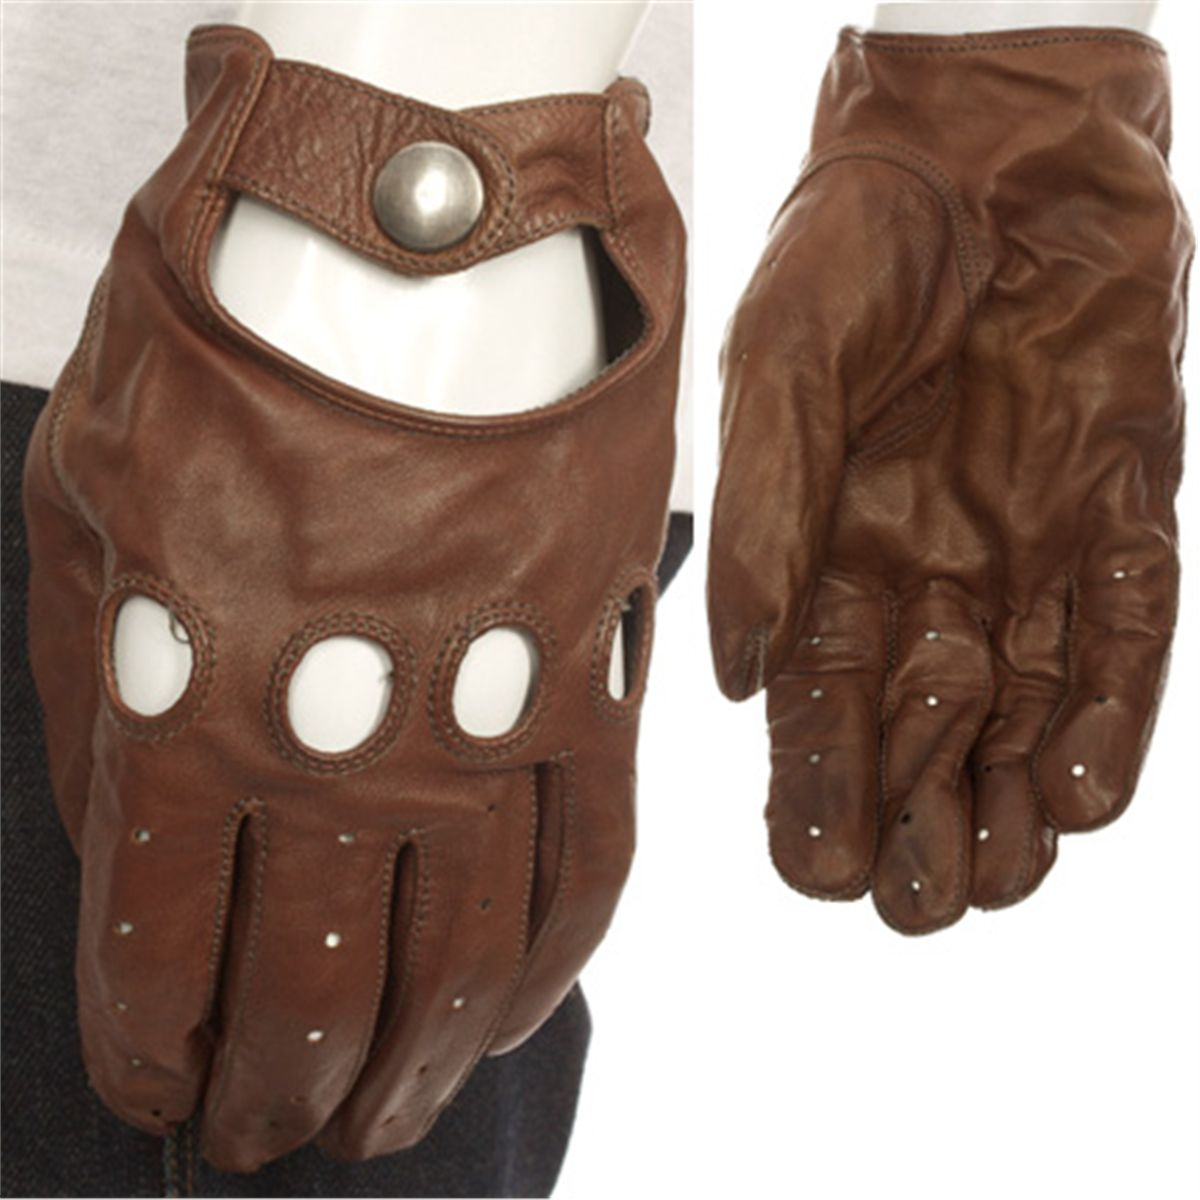 Leather driving gloves from drive - Naglo Mens Leather Gloves Drive Fingerless Sheepskin Mittens Cycling Motorcycle Glove Black Brown Men Driving